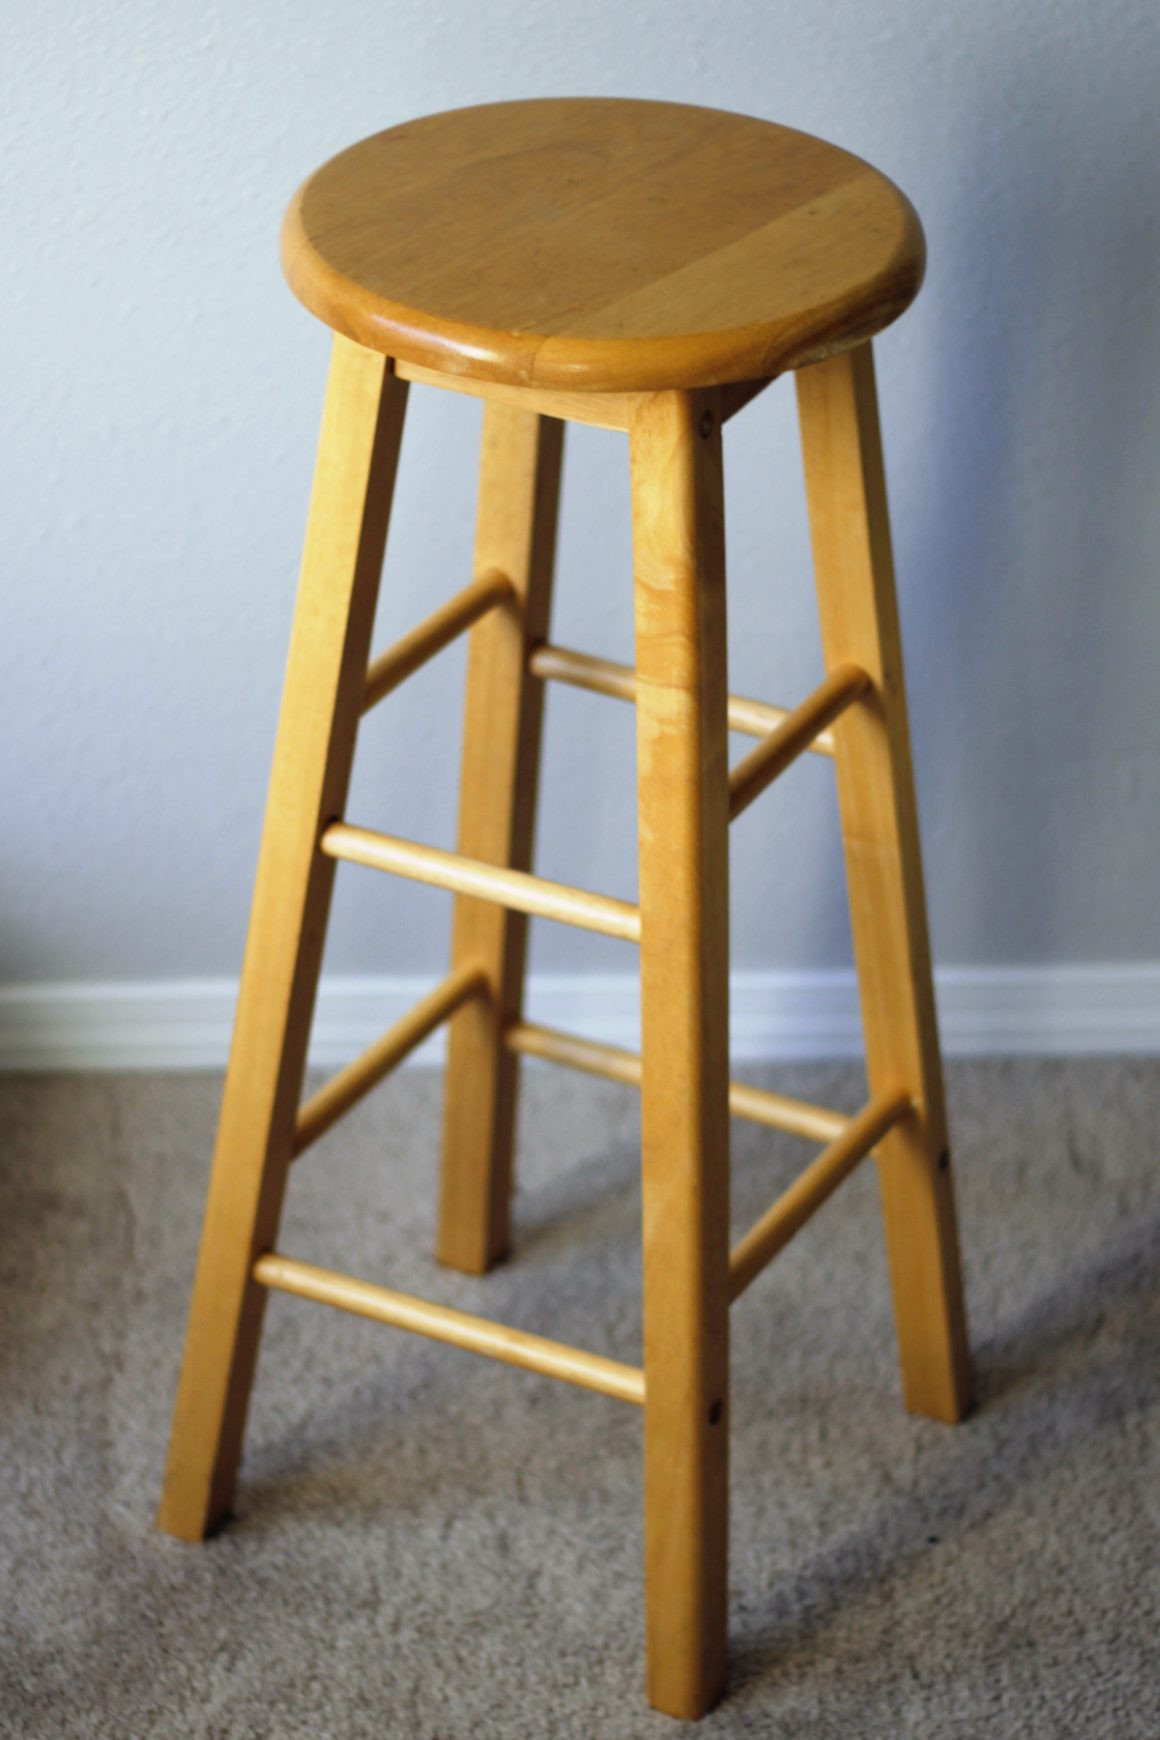 Best ideas about DIY Bar Stools . Save or Pin Easy Bar Stool Makeover Now.